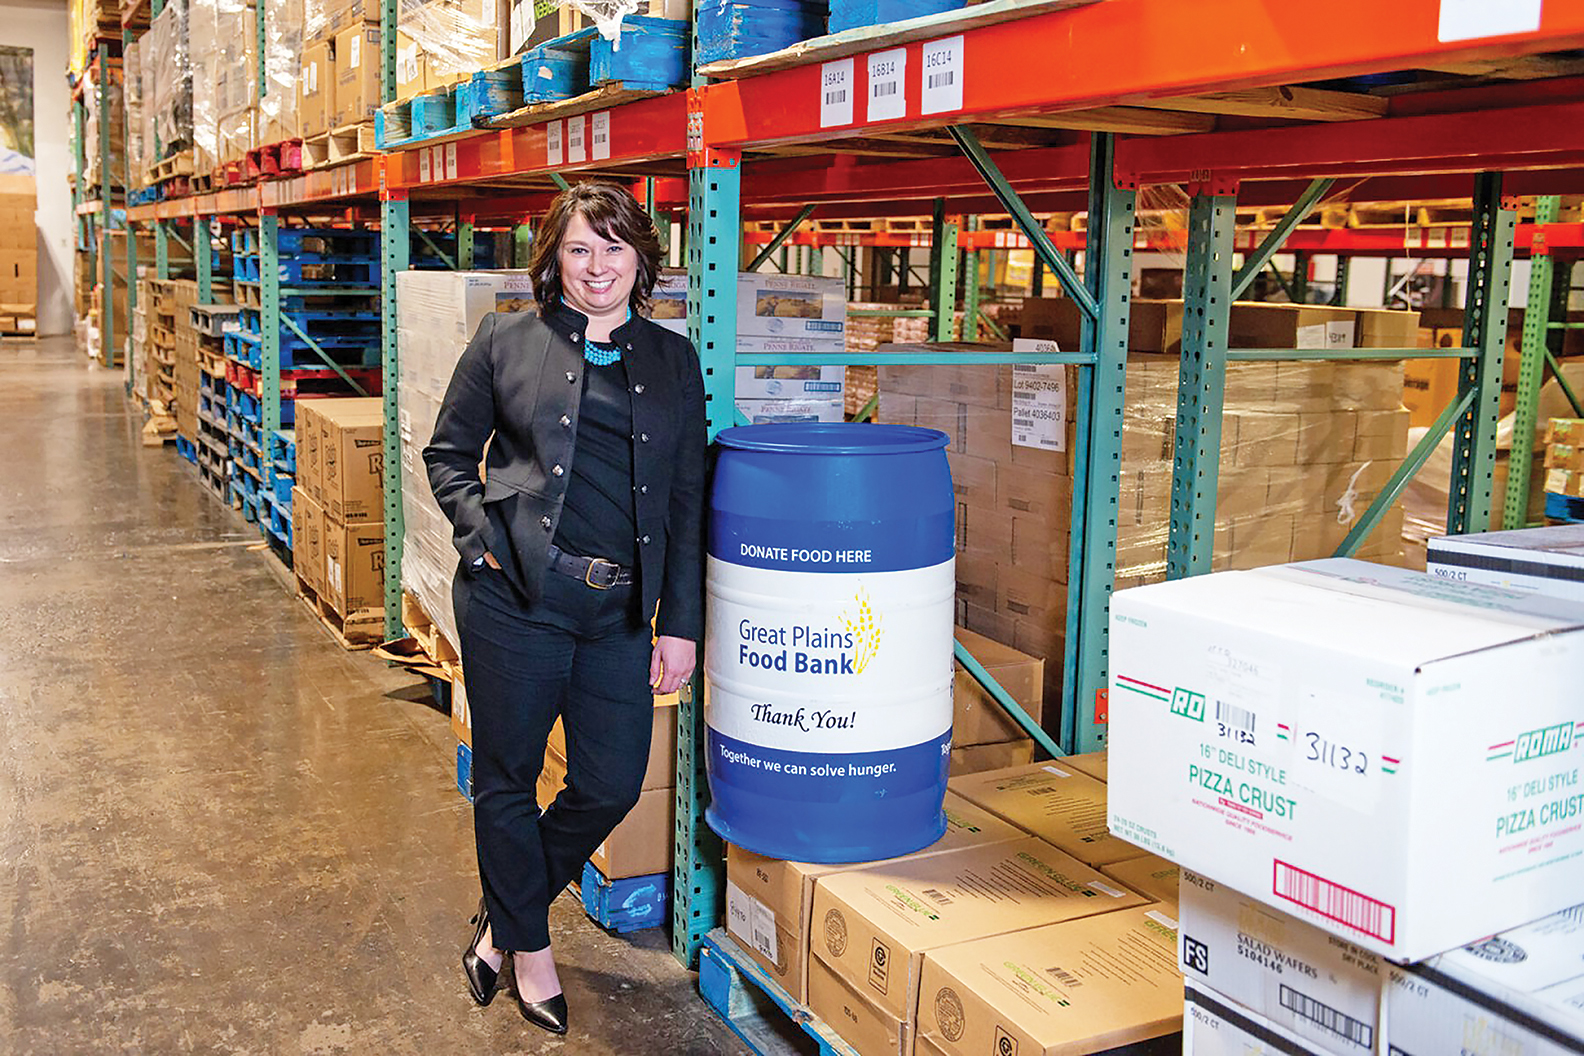 Food bank feeds the hungry during pandemic